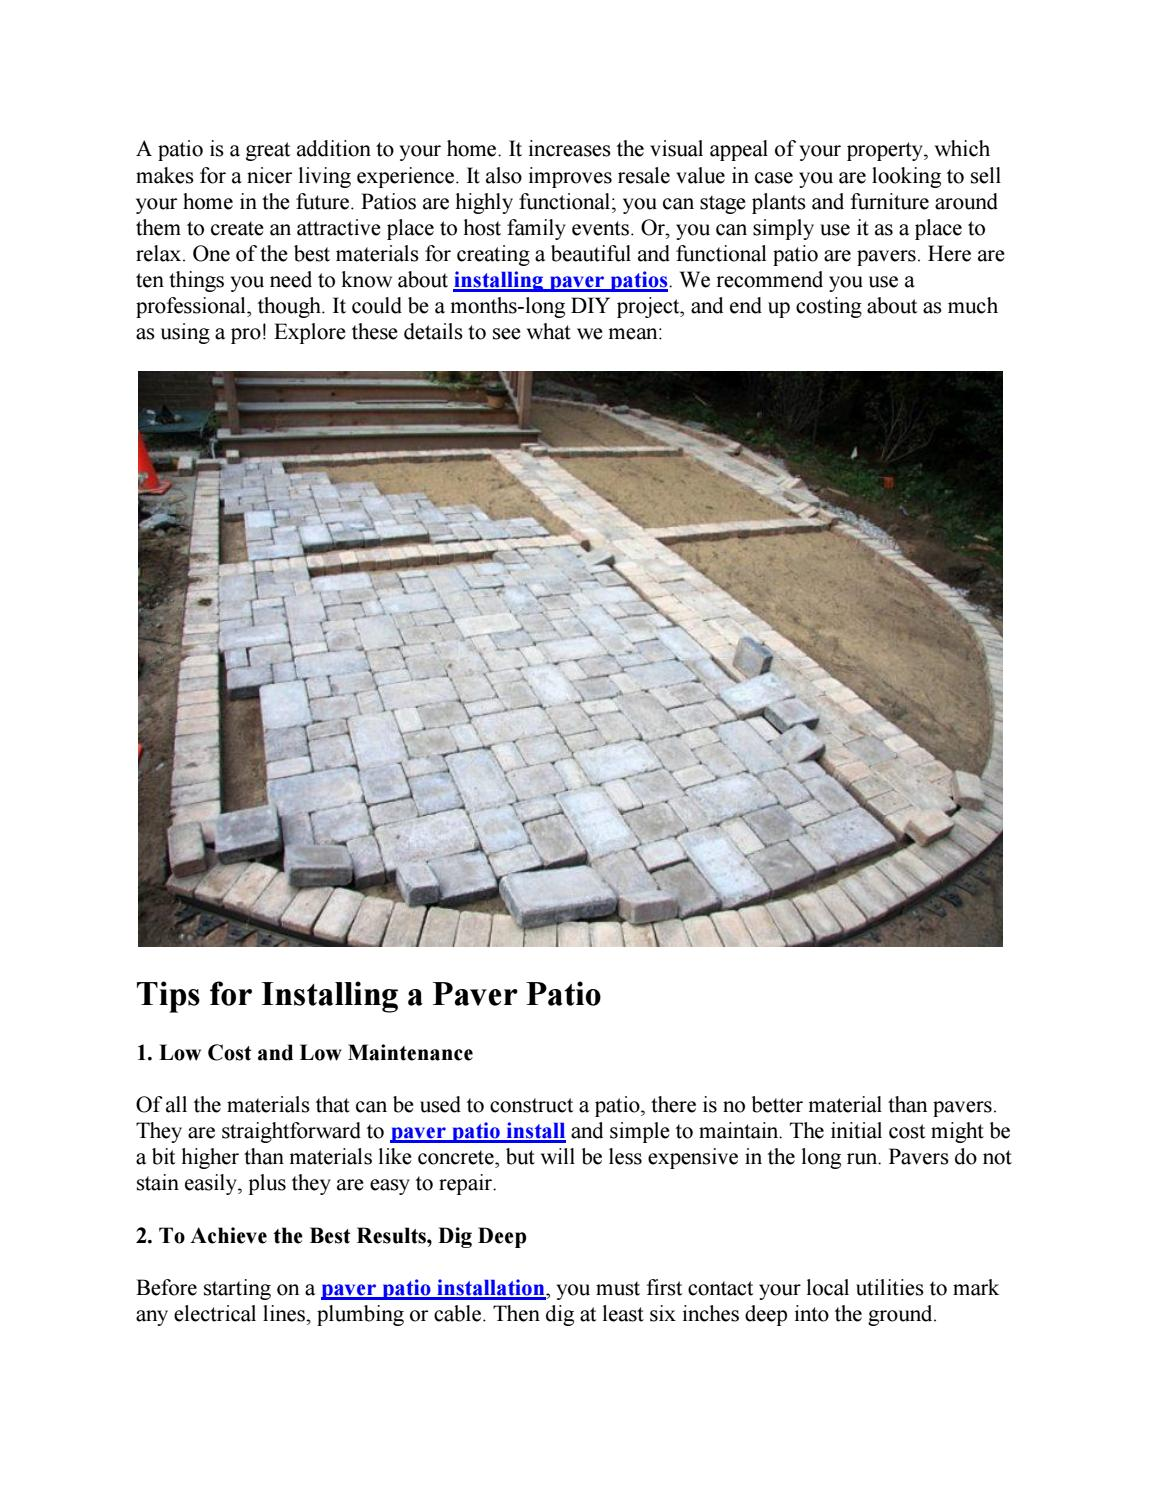 10 tips for installing a paver patio by